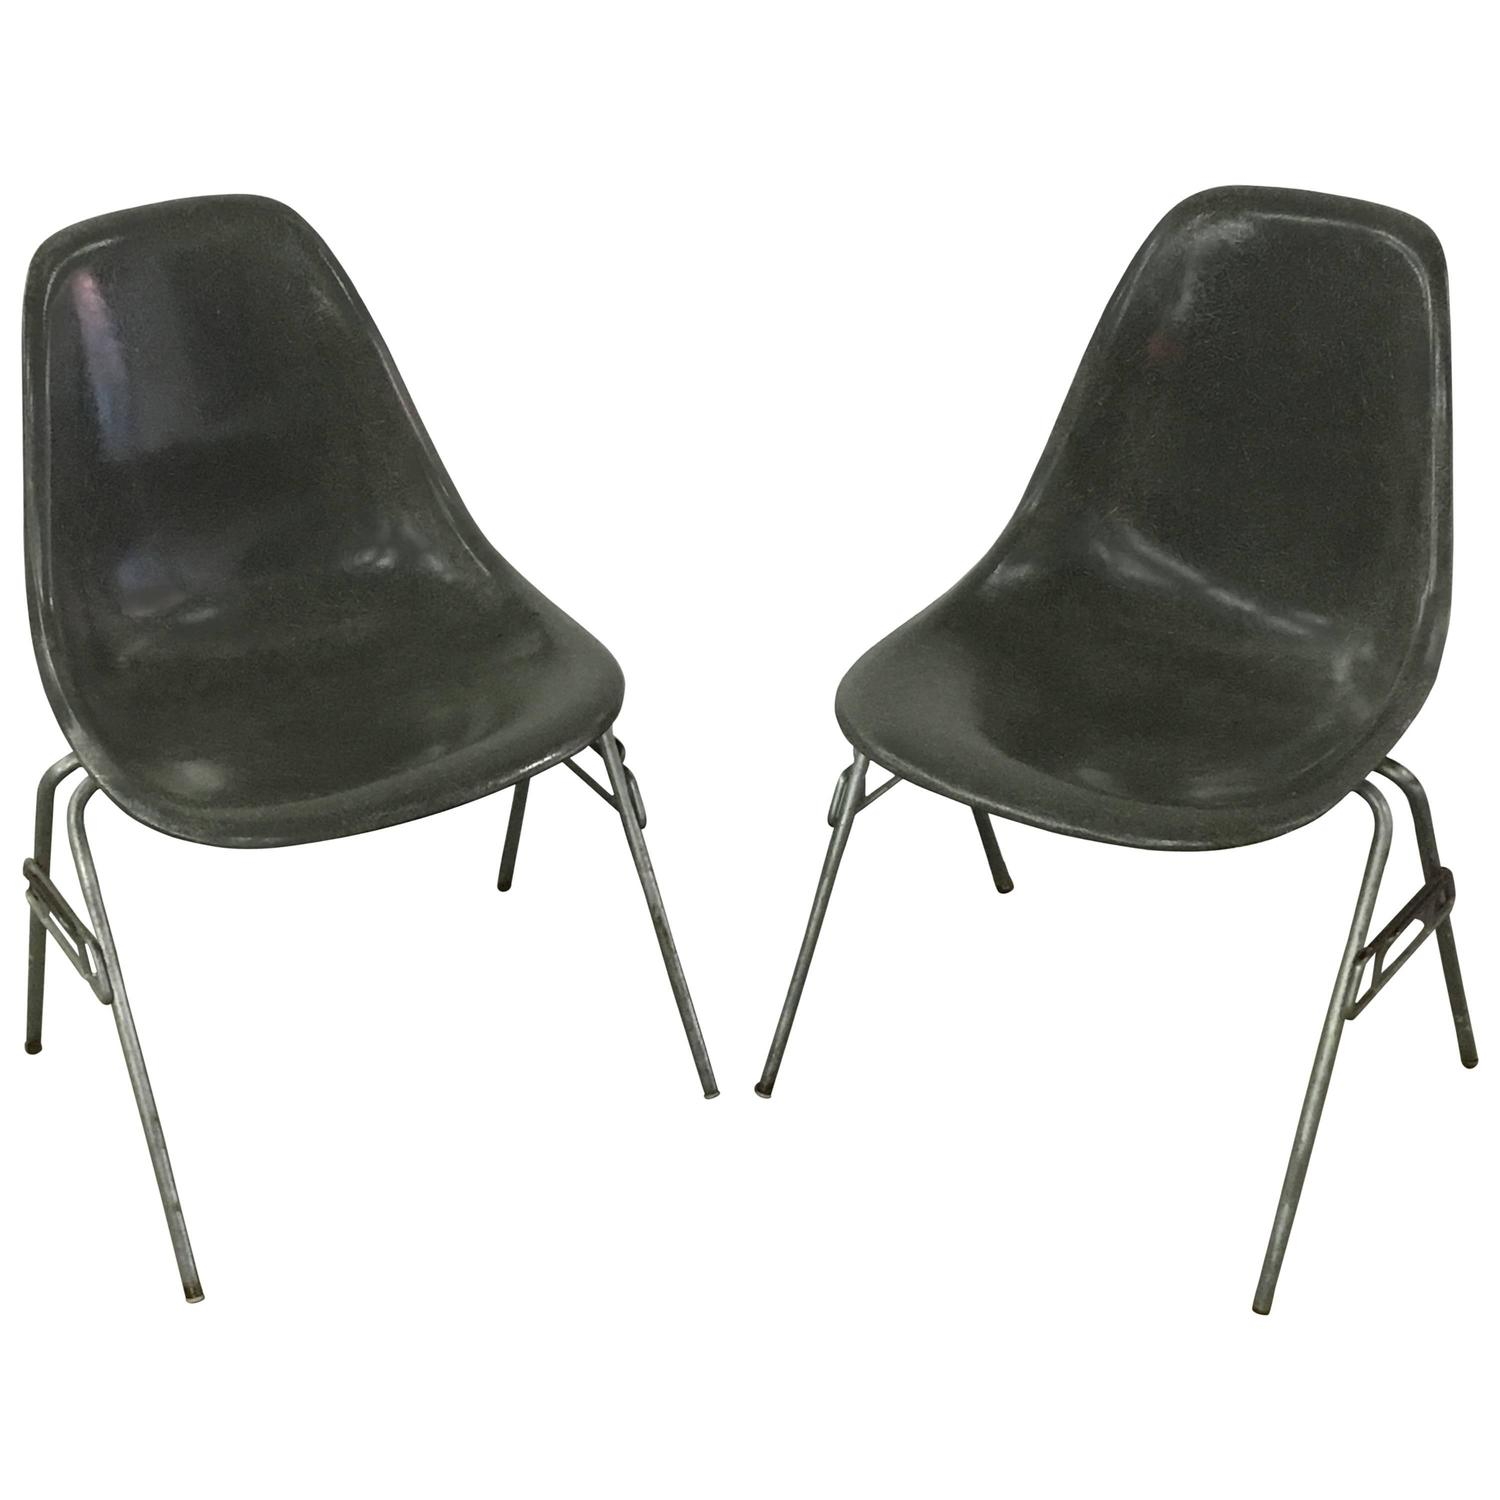 Two herman miller eames dss chairs in elephant grey at 1stdibs - Fauteuil herman miller ...